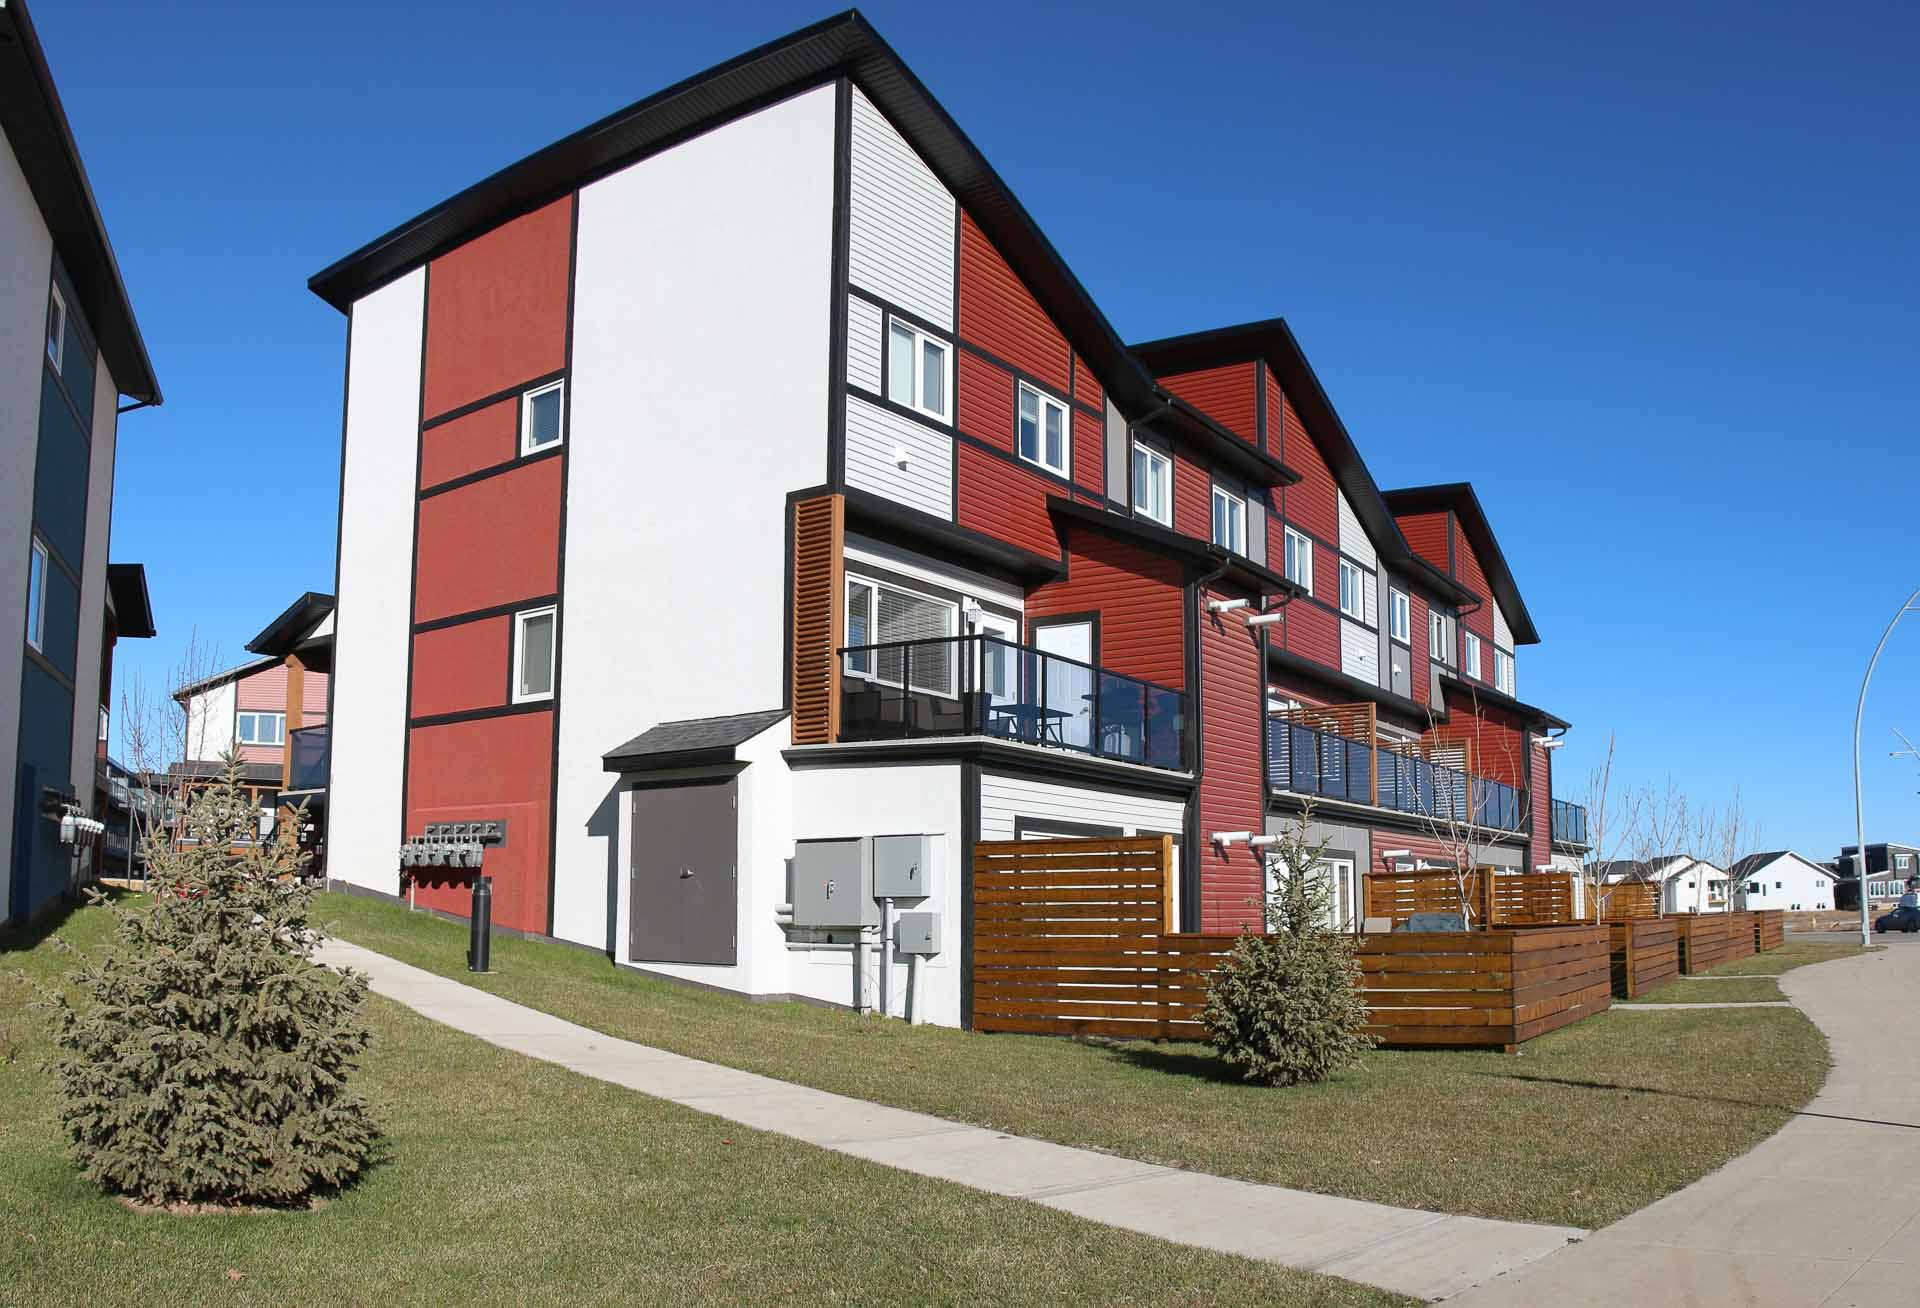 A multi-family residential building with red and white siding and fenced semi-private yards. In Saskatoon, Sask.